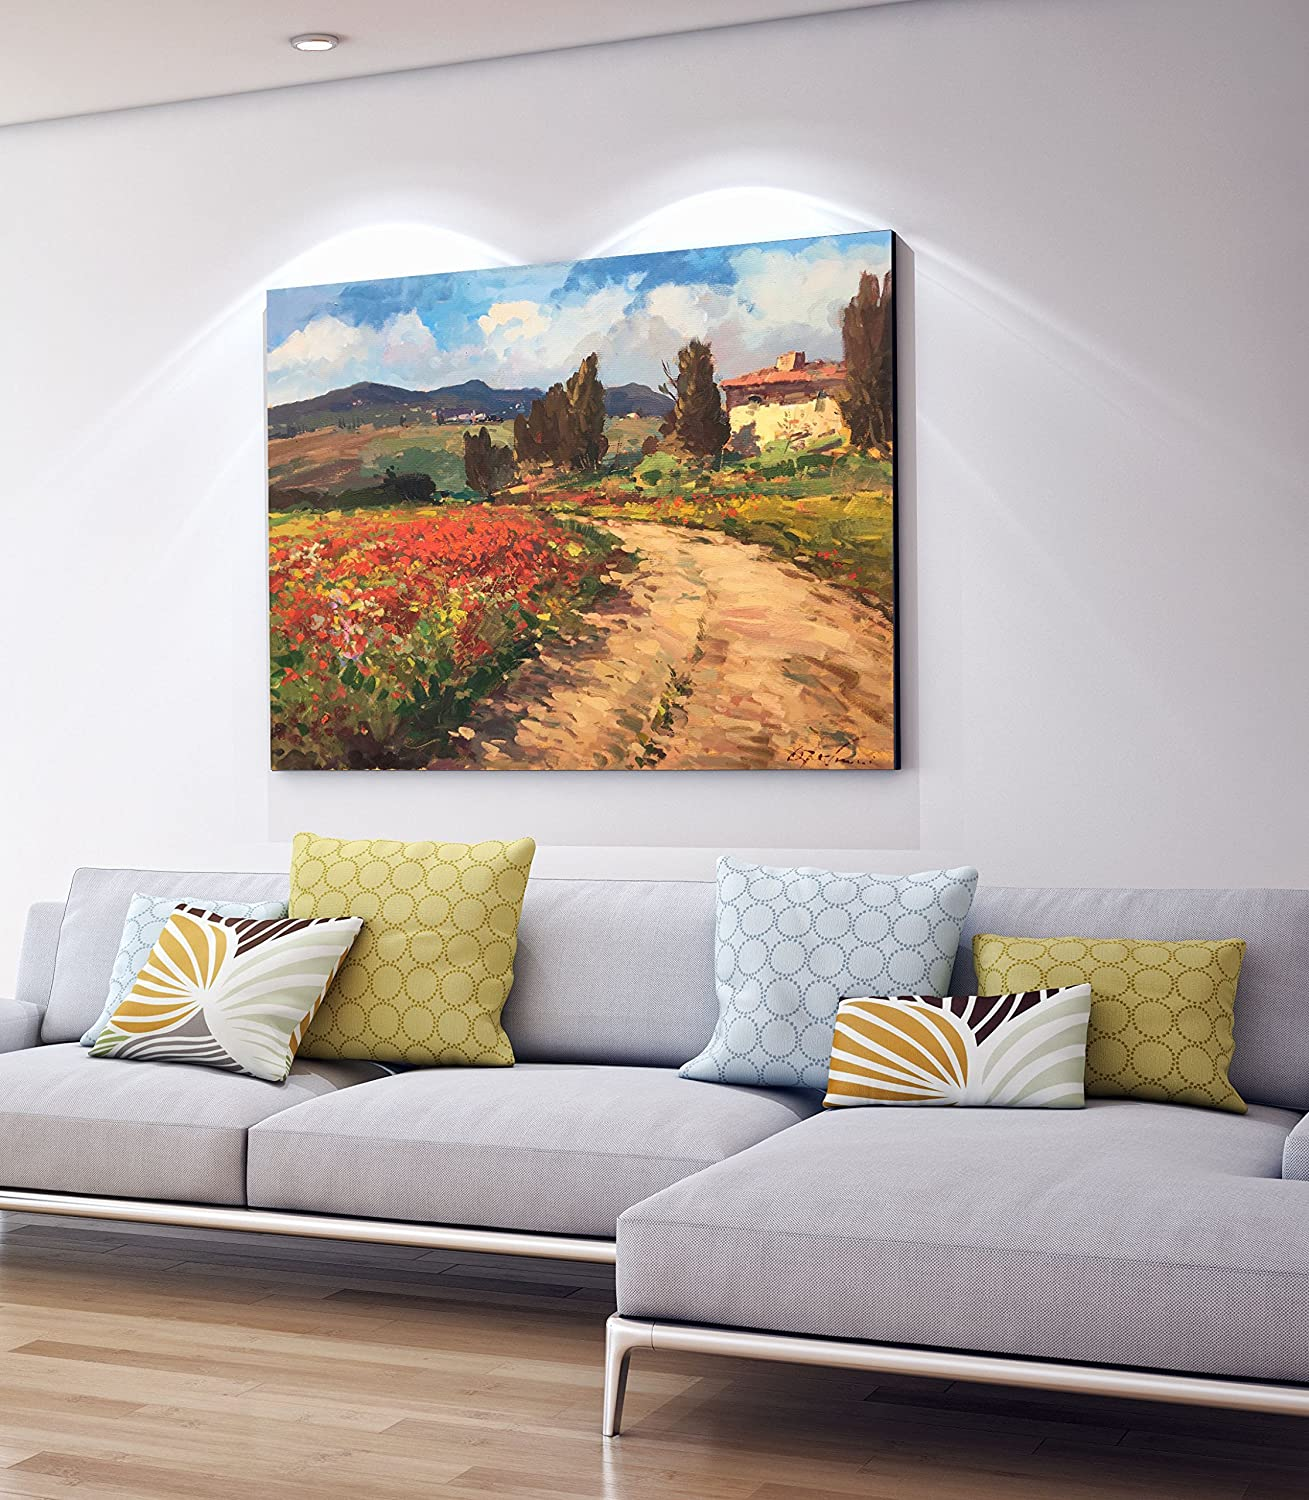 2c19294dad6 Amazon.com  Tuscan Chianti Country Wall Art Tuscany Italy Artwork Landscape  Canvas Prints Poppies Trees Cypress House Filed Sunflowers Home Decor Living  ...